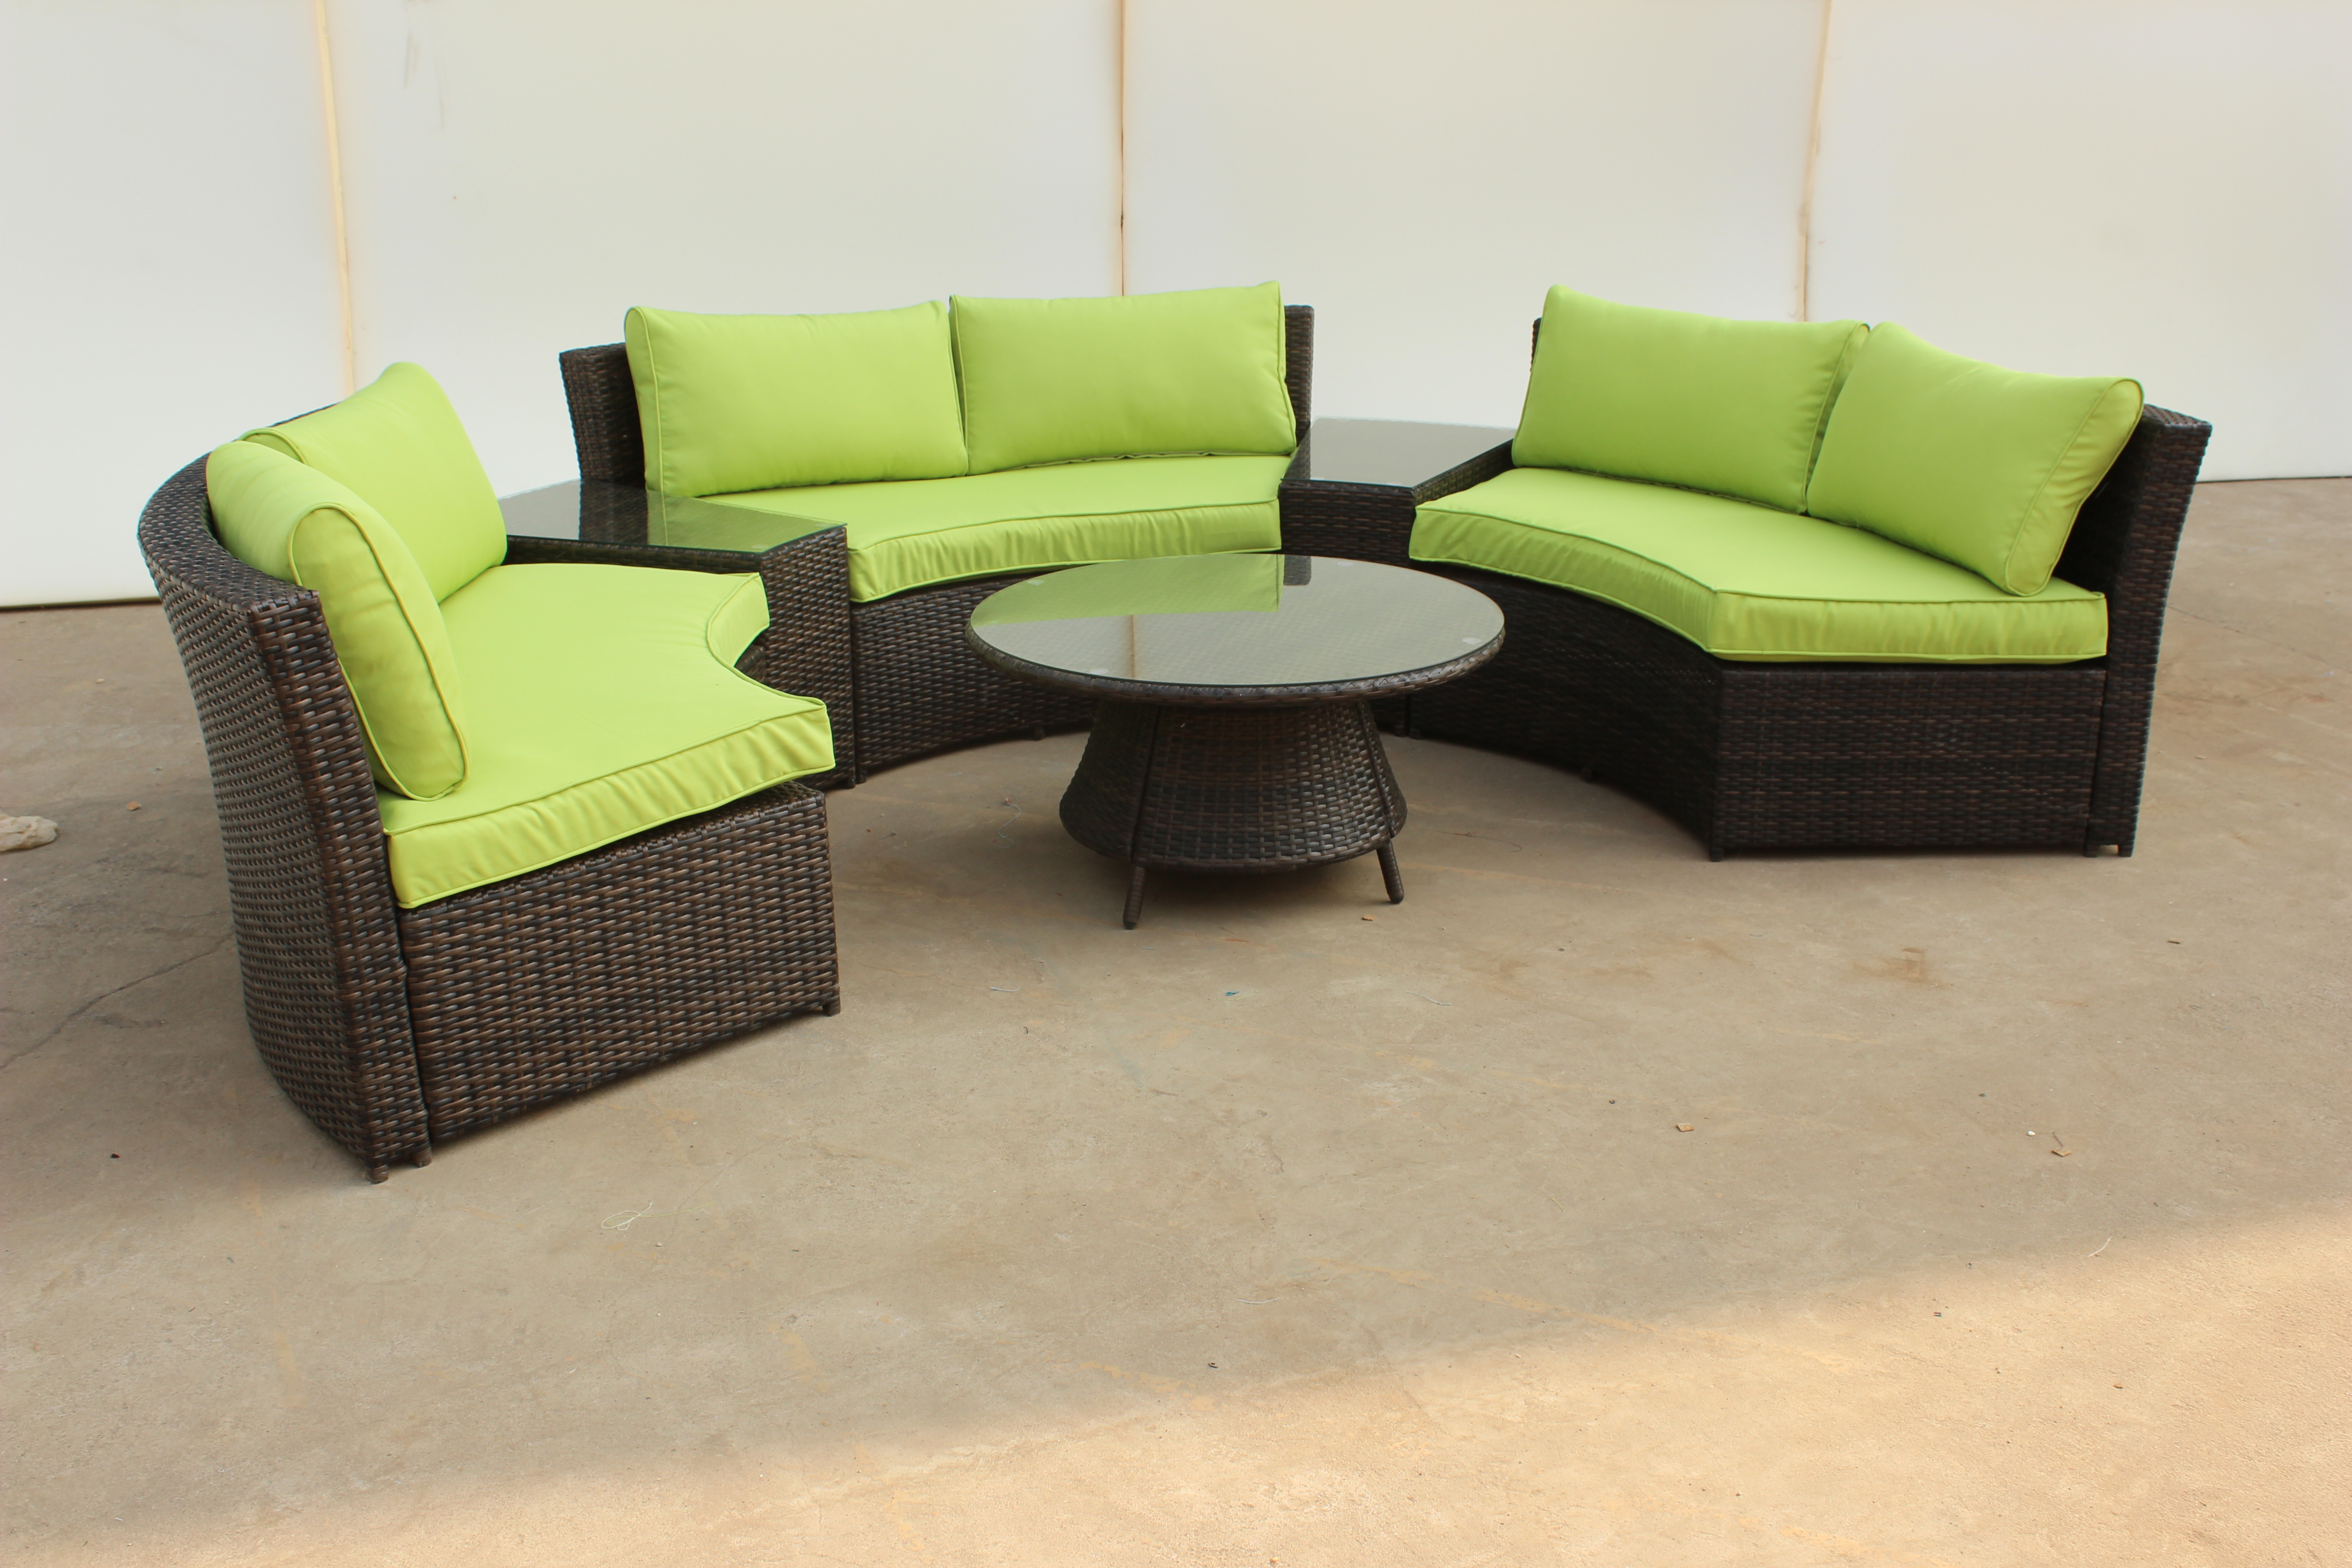 Popular Outdoor Rattan Sofa set for garden high quality and reasonable price